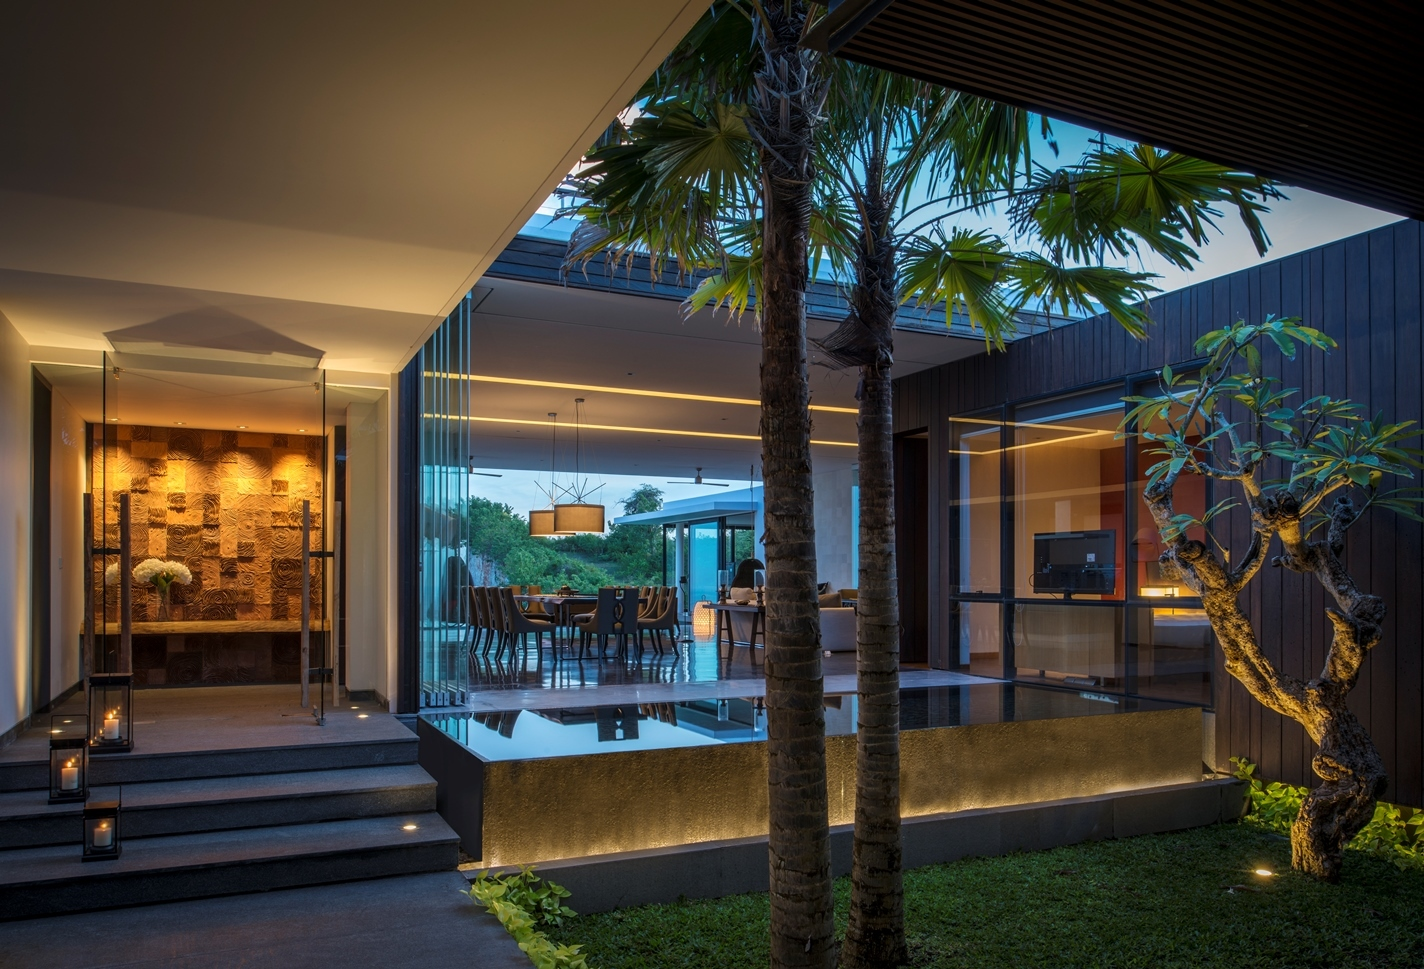 bali home design. Modern Tropical Home with Interior Courtyard Resort Villa With Balinese Theme  iDesignArch